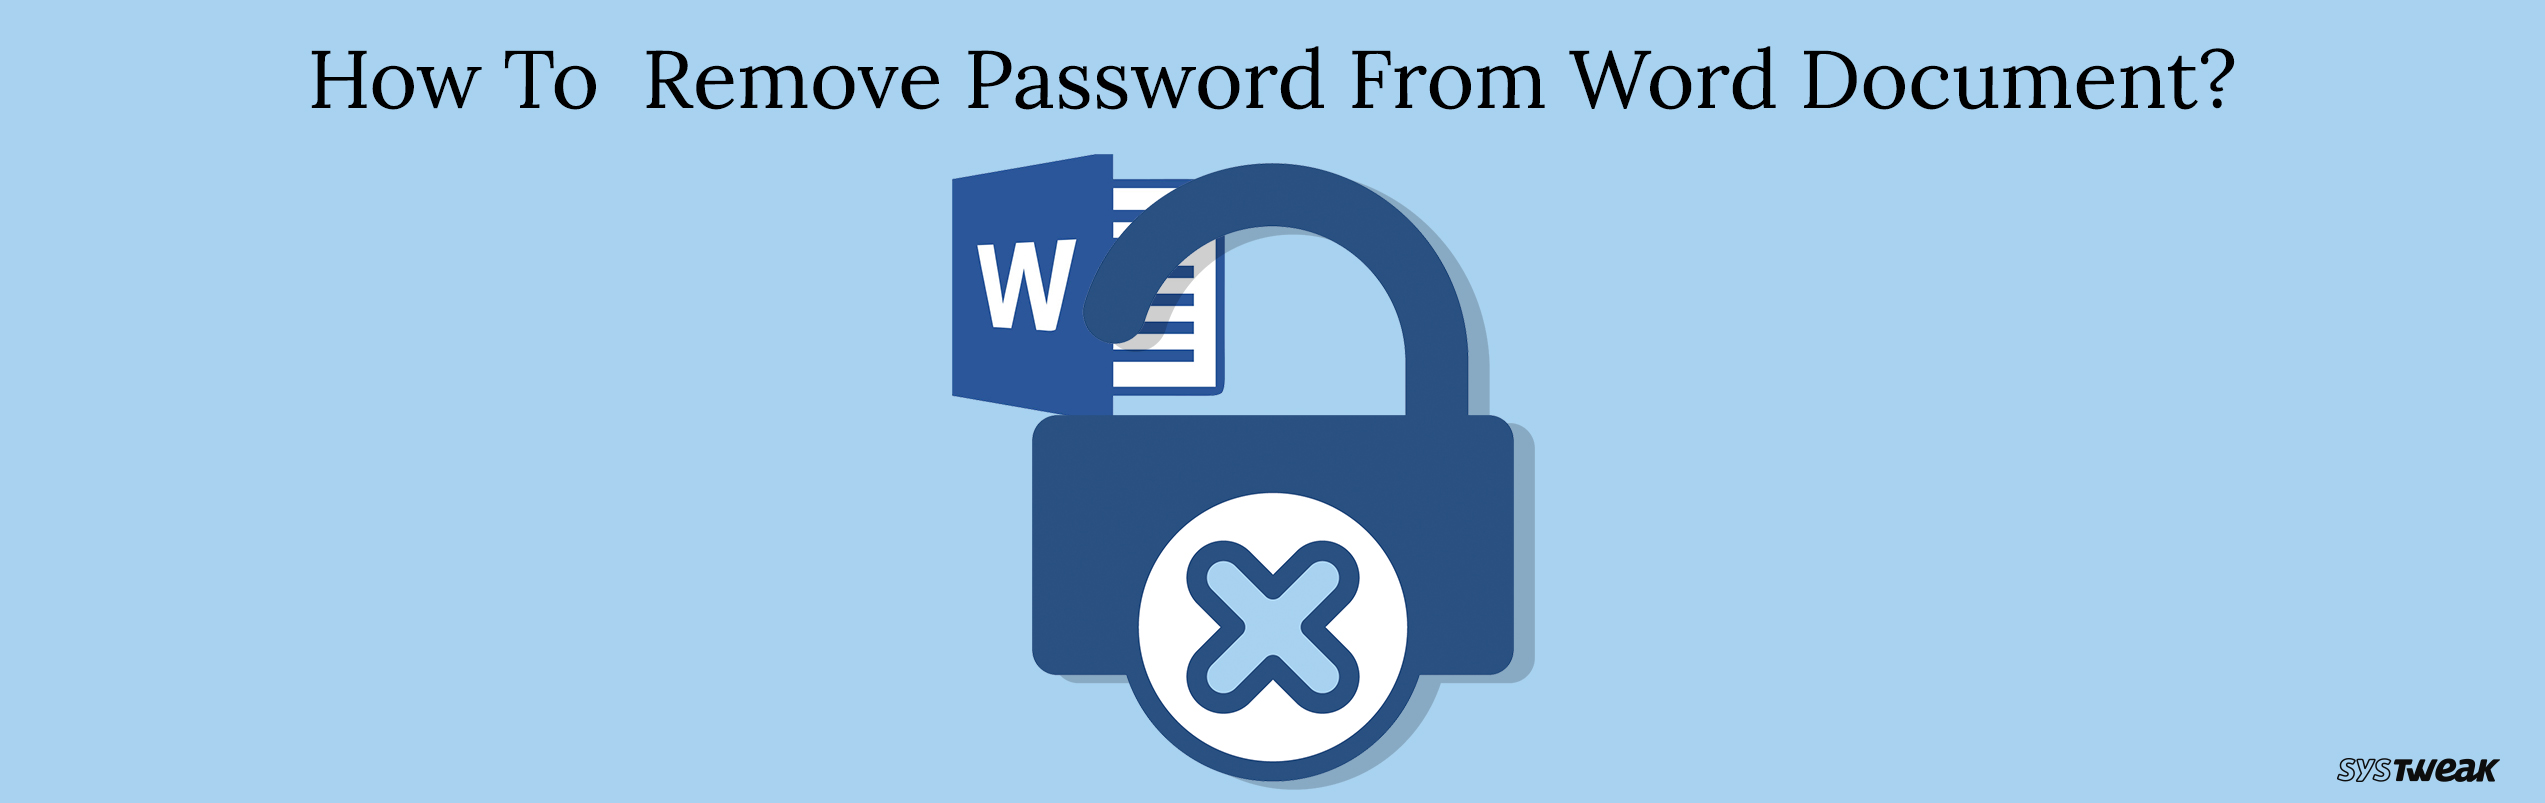 How To Remove Password From Word Document